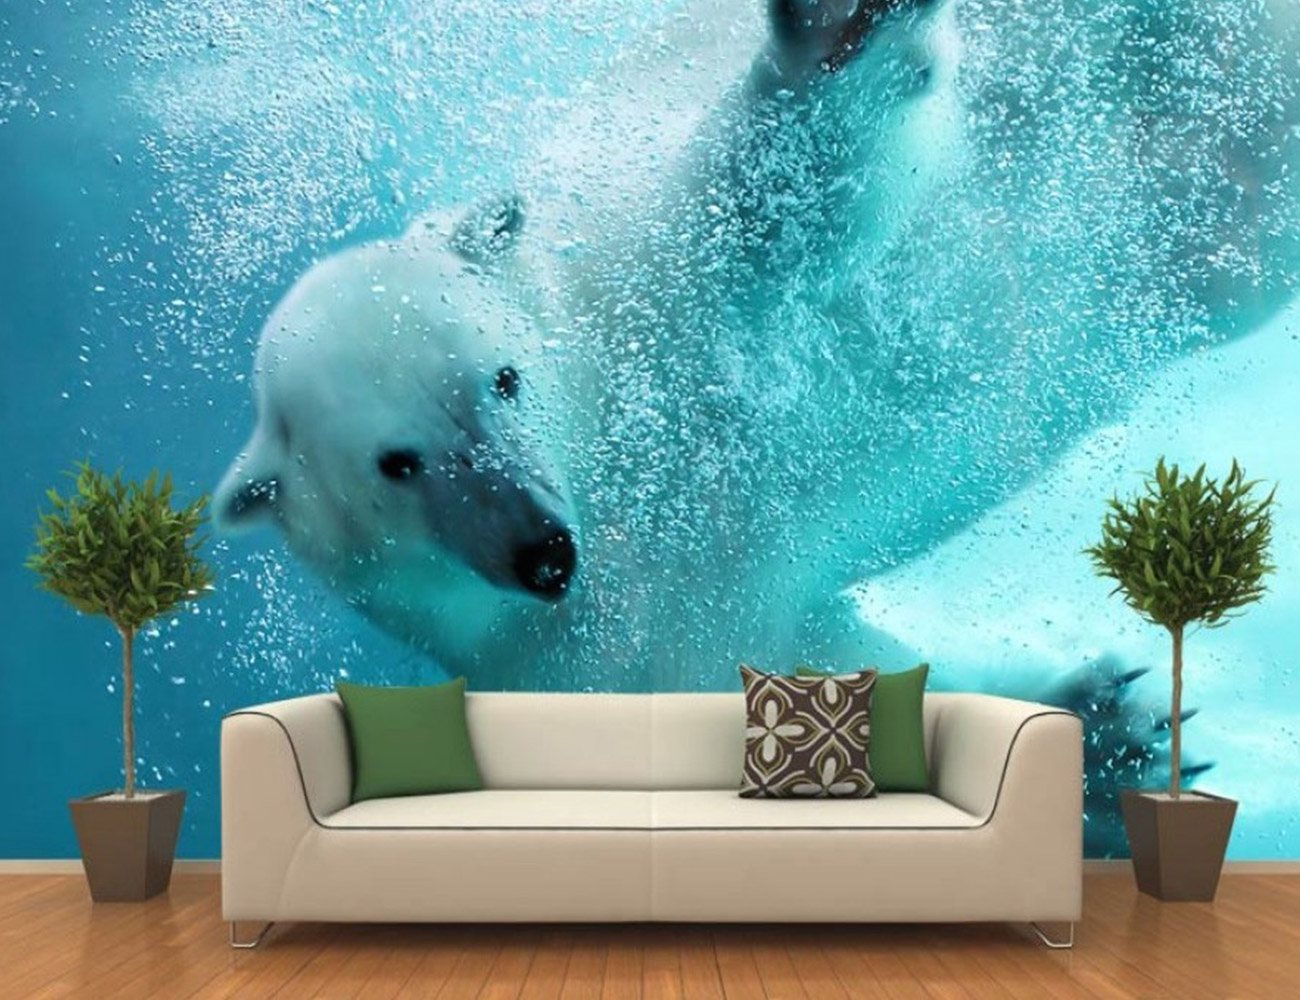 How To Paint A Wall Mural In Your Room